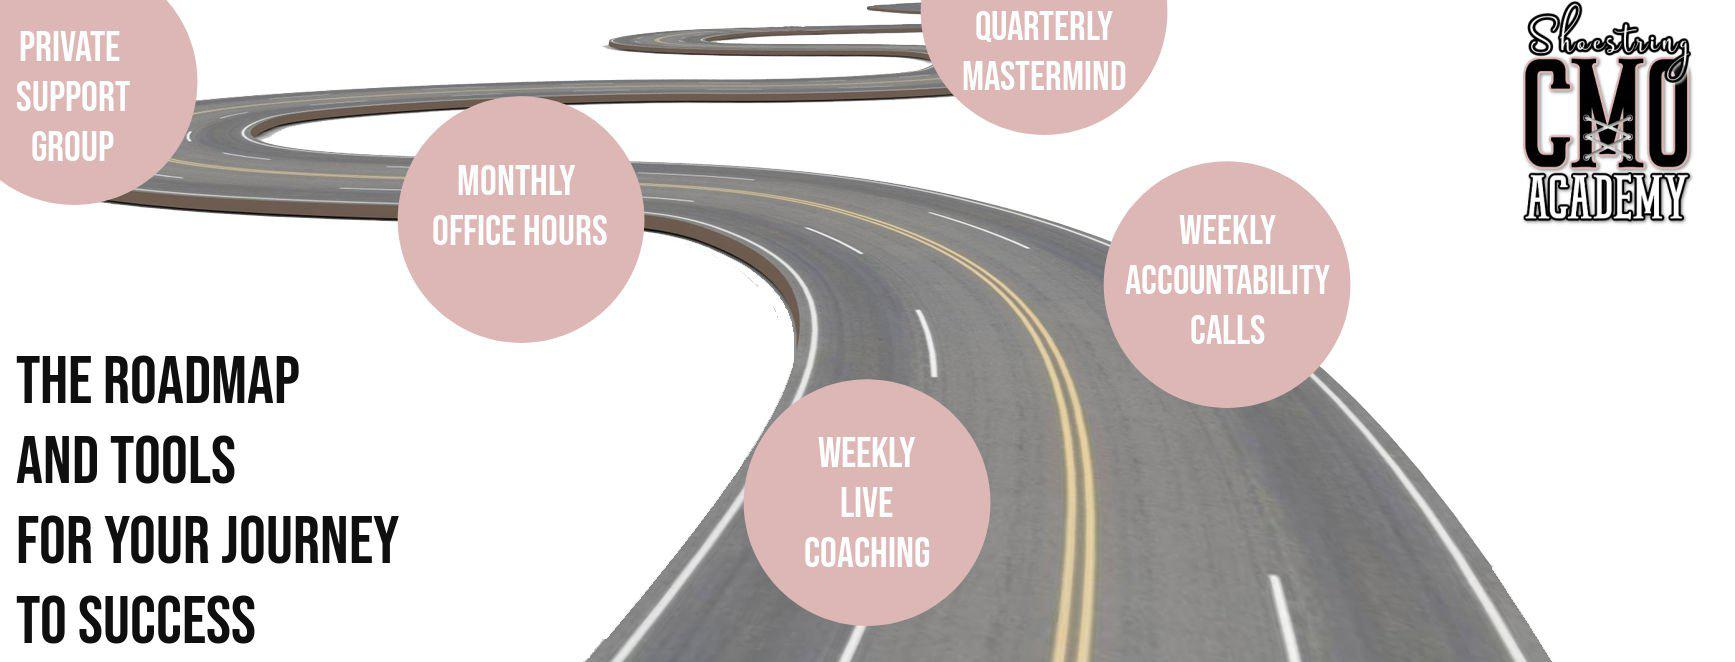 The roadmap and tools for your journey to success with the Shoestring CMO Academy.